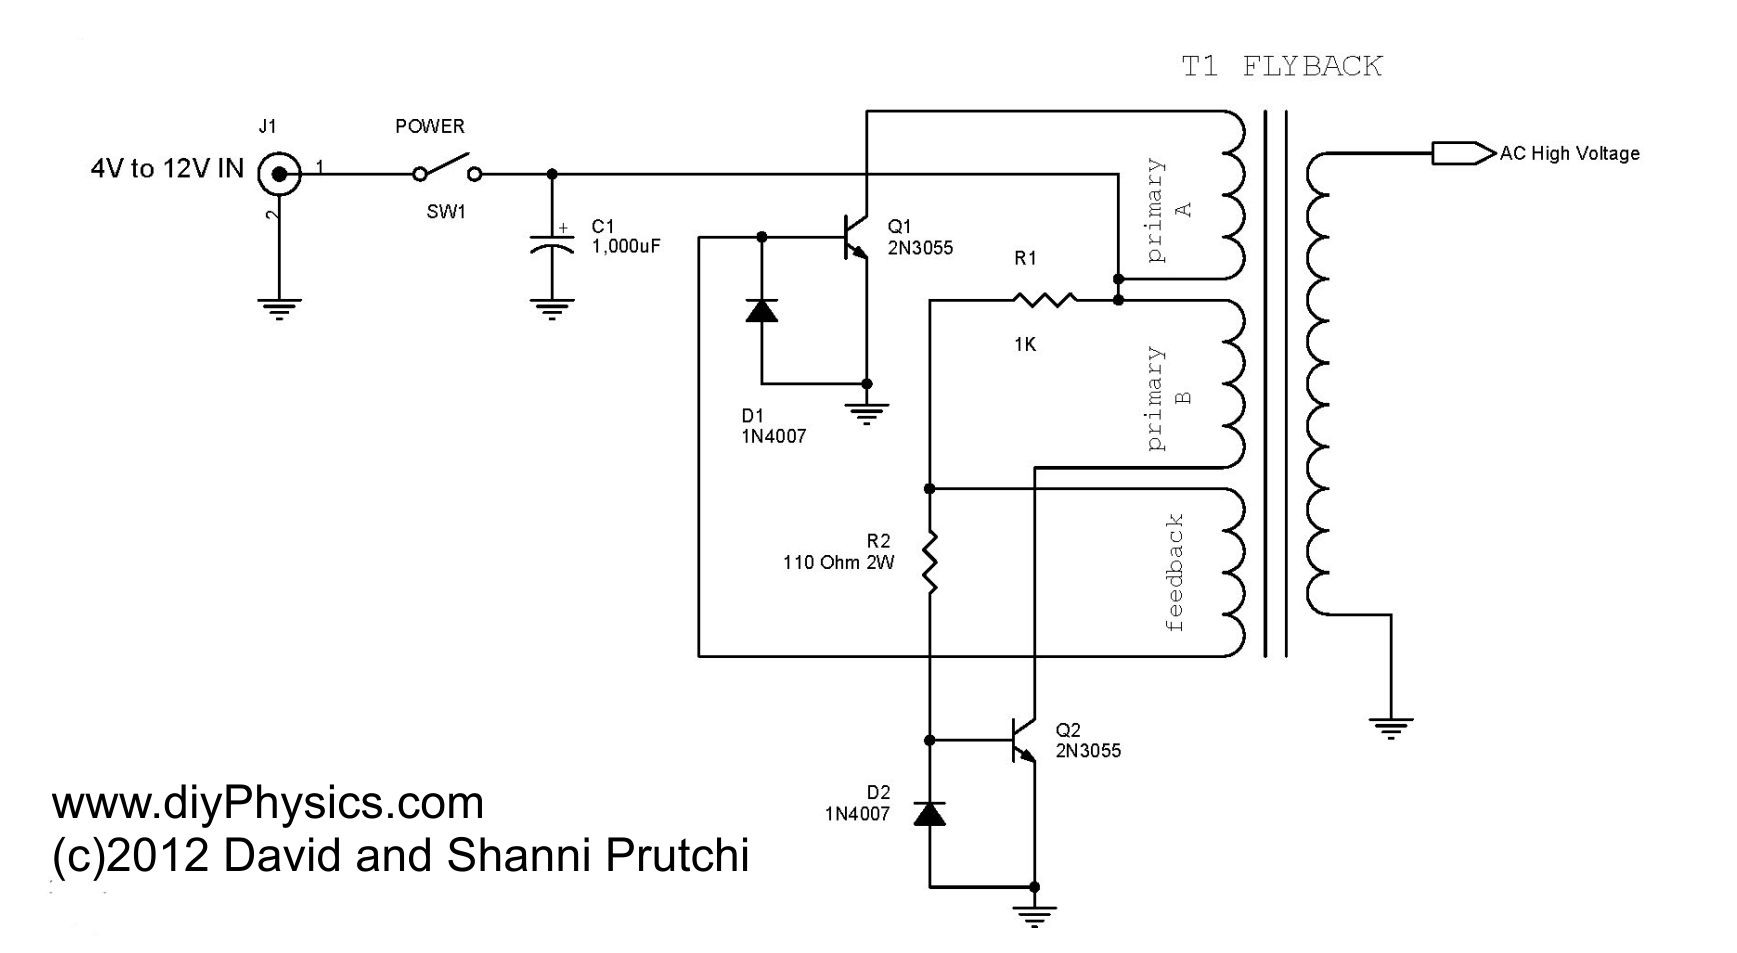 Diy 250 Kv High Voltage Dc Power Supply With Neat Trick For Variac Wiring Diagram Youtube Ac Driver By David And Shanni Prutchi